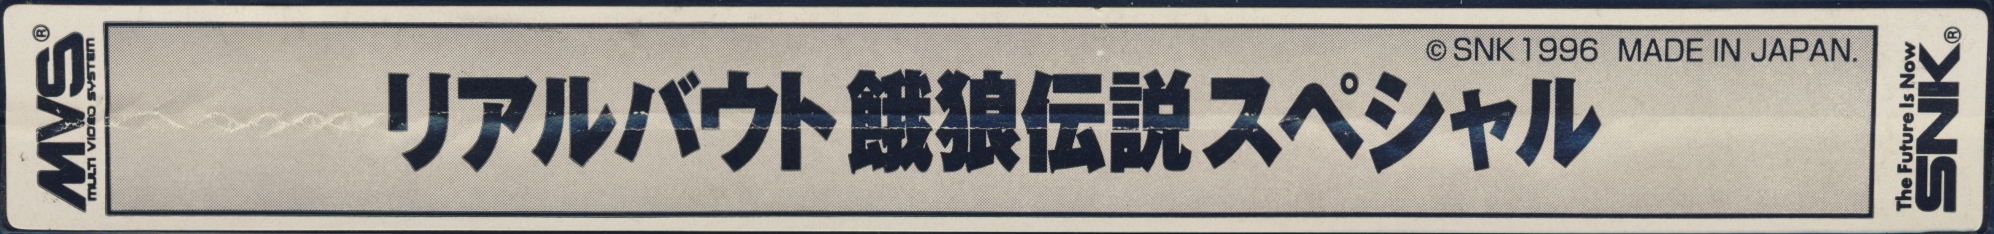 Real bout fatal fury special jp label.jpg